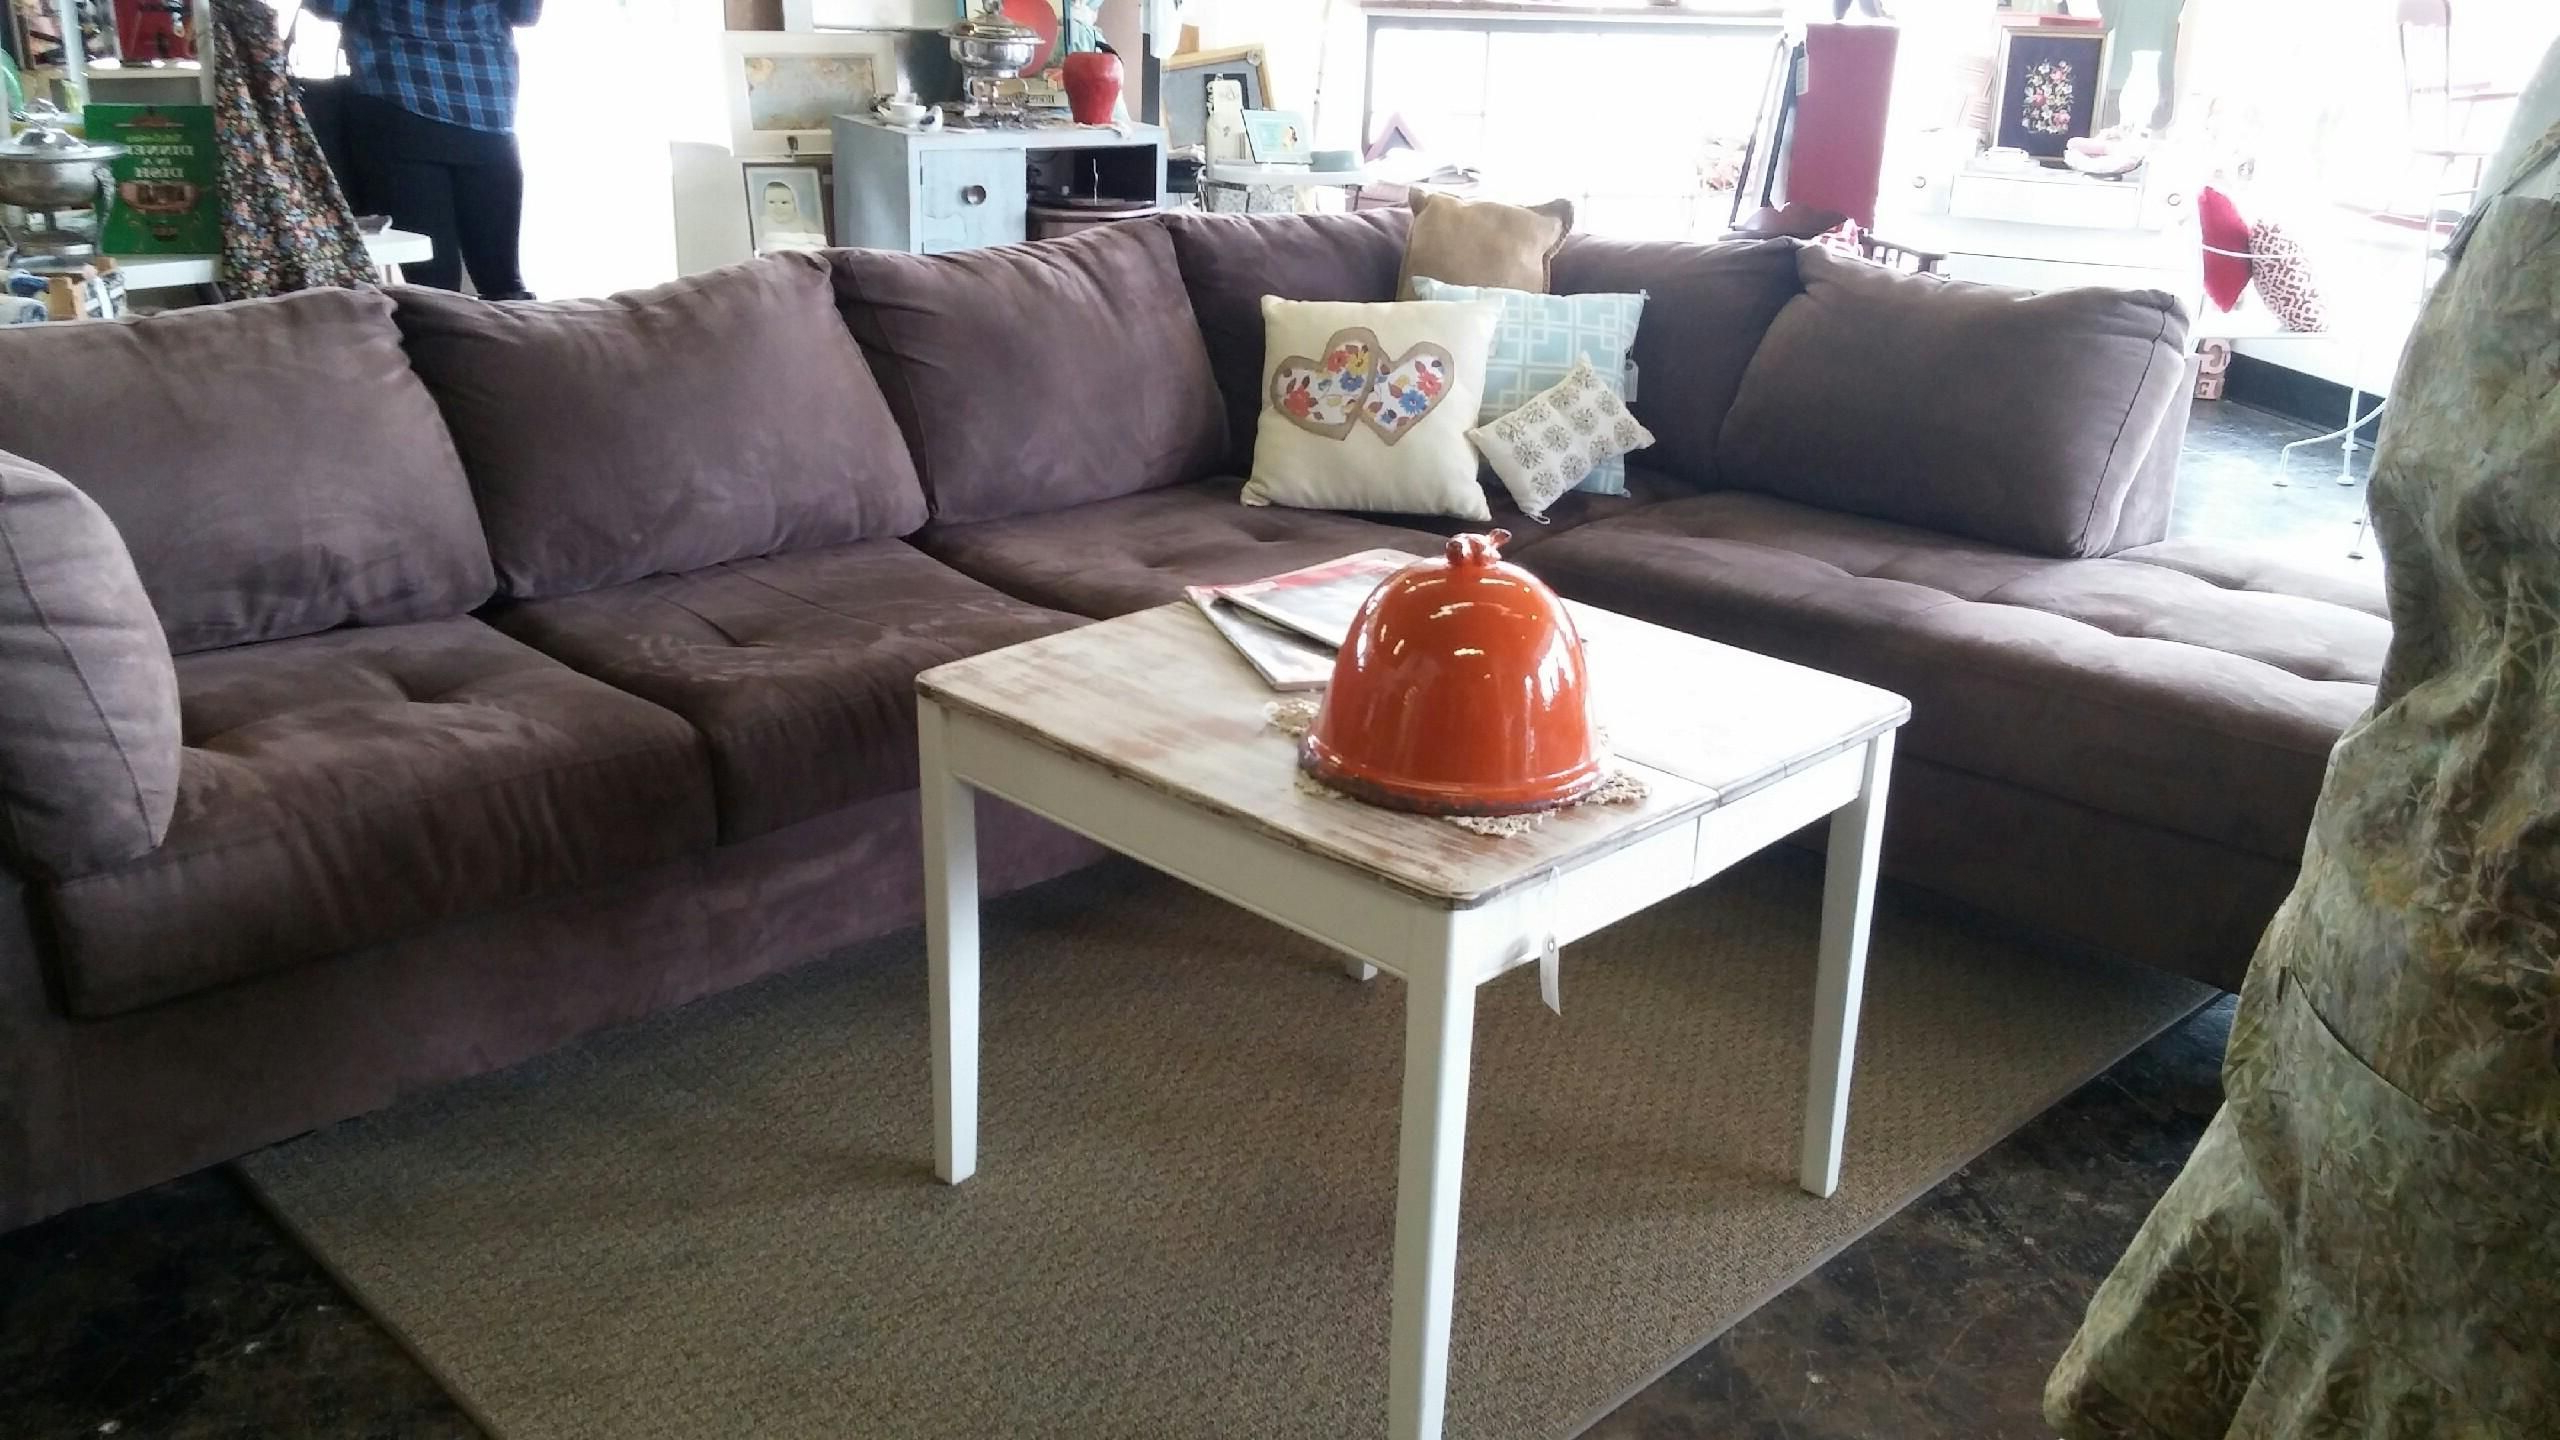 French Seamed Sectional Sofas Oblong Mustard With 2017 Pinmustard Seed Home Decor & More On Furniture (View 7 of 25)